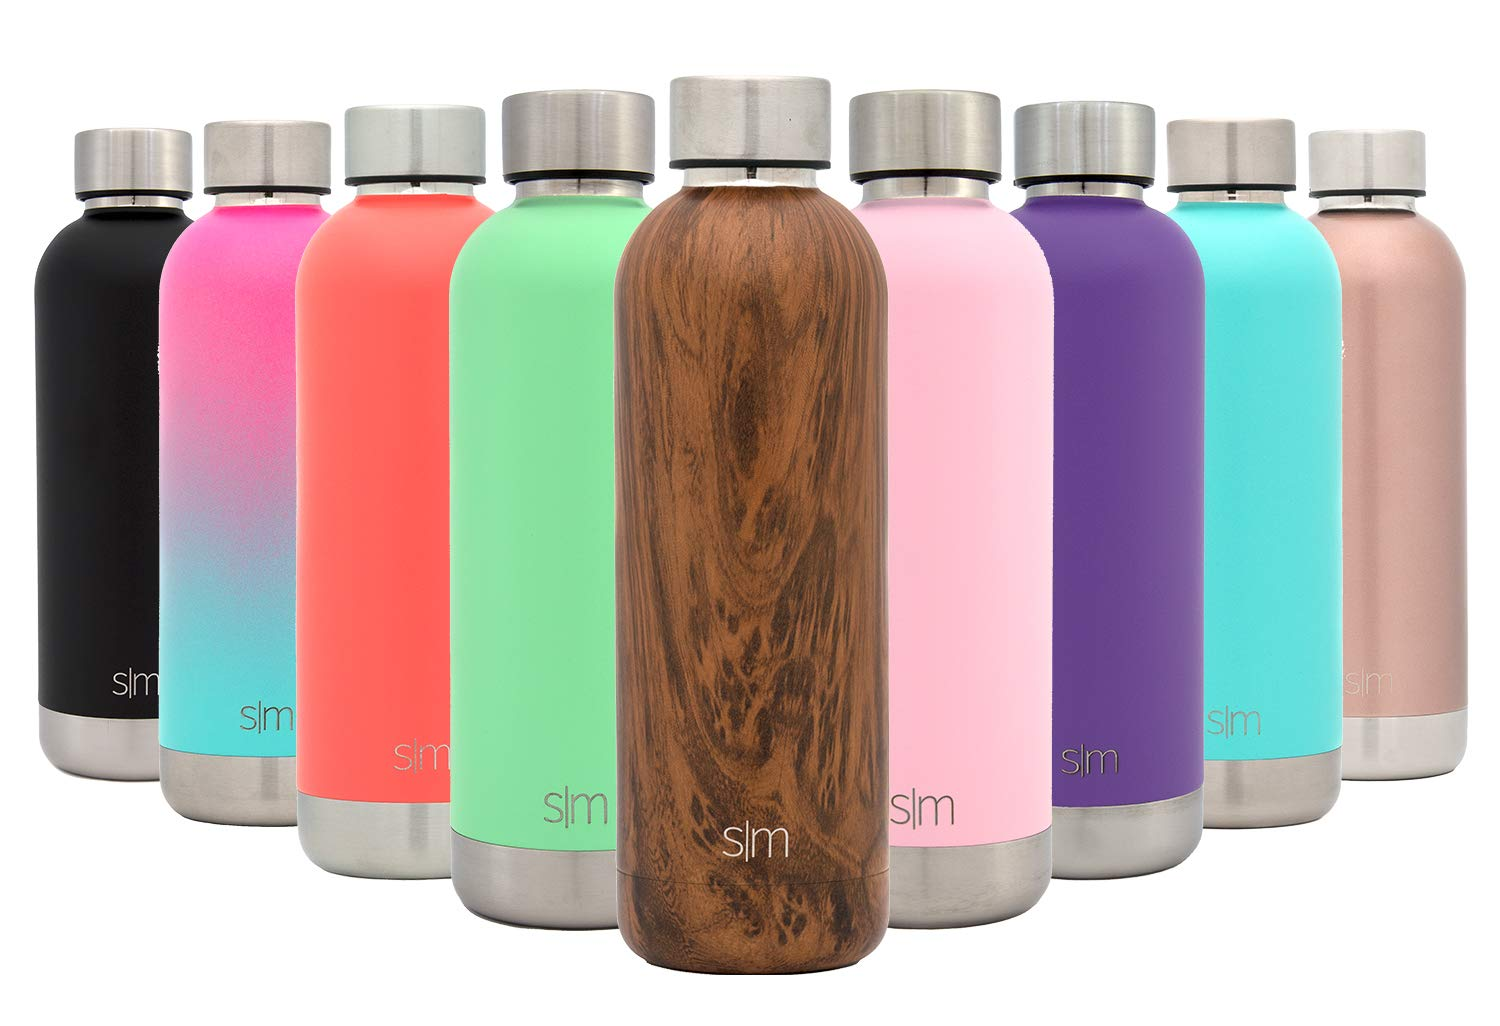 Simple Modern 12oz Bolt Water Bottle - Stainless Steel Hydro Kids Flask - Double Wall Vacuum Insulated Reusable Brown Small Metal Coffee Tumbler Leakproof Thermos - Wood Grain